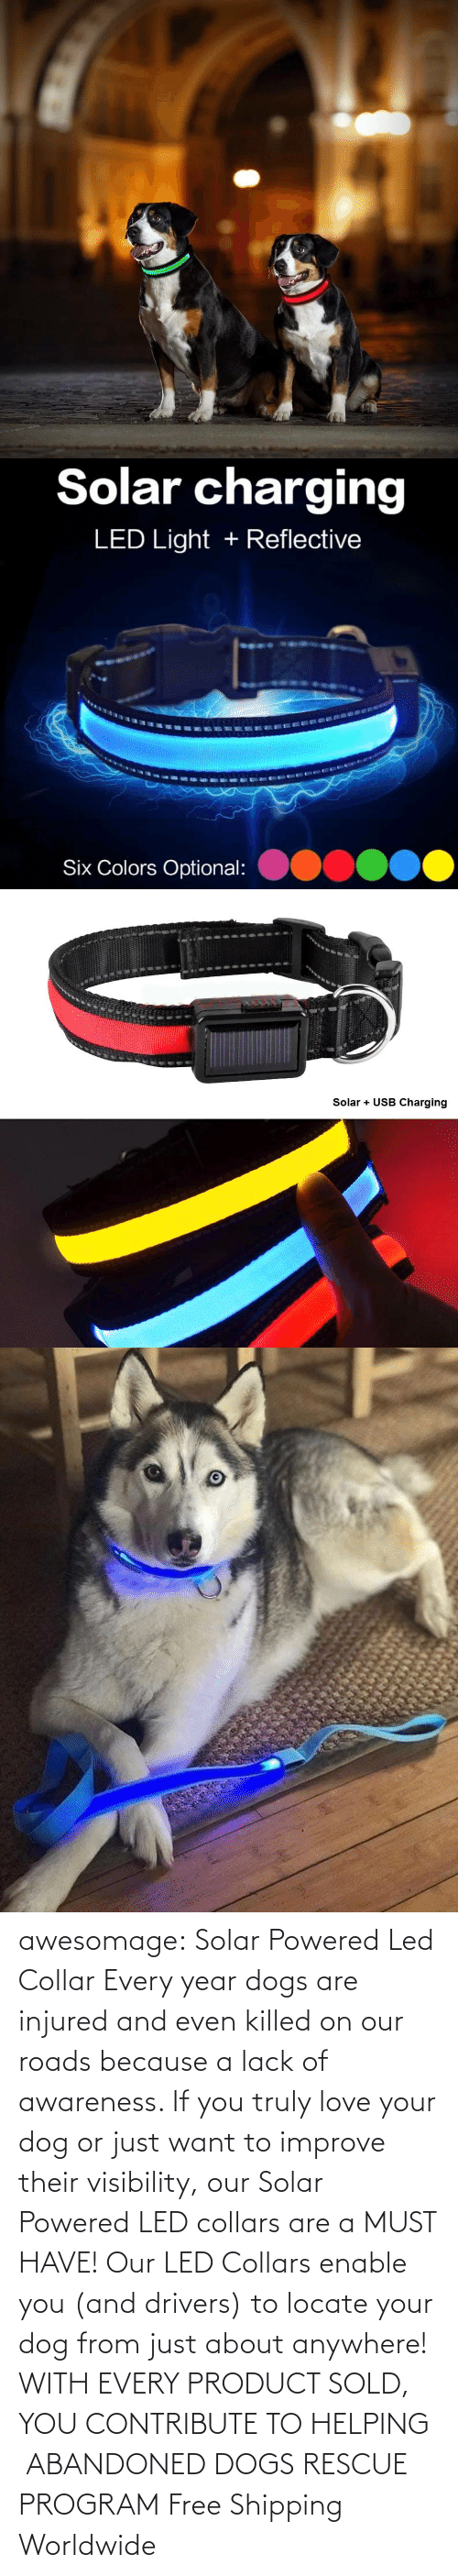 lack: awesomage: Solar Powered Led Collar   Every year dogs are injured and even killed on our roads because a lack of awareness. If you truly love your dog or just want to improve their visibility, our Solar Powered LED collars are a MUST HAVE!   Our LED Collars enable you (and drivers) to locate your dog from just about anywhere!     WITH EVERY PRODUCT SOLD, YOU CONTRIBUTE TO HELPING ABANDONED DOGS RESCUE PROGRAM     Free Shipping Worldwide